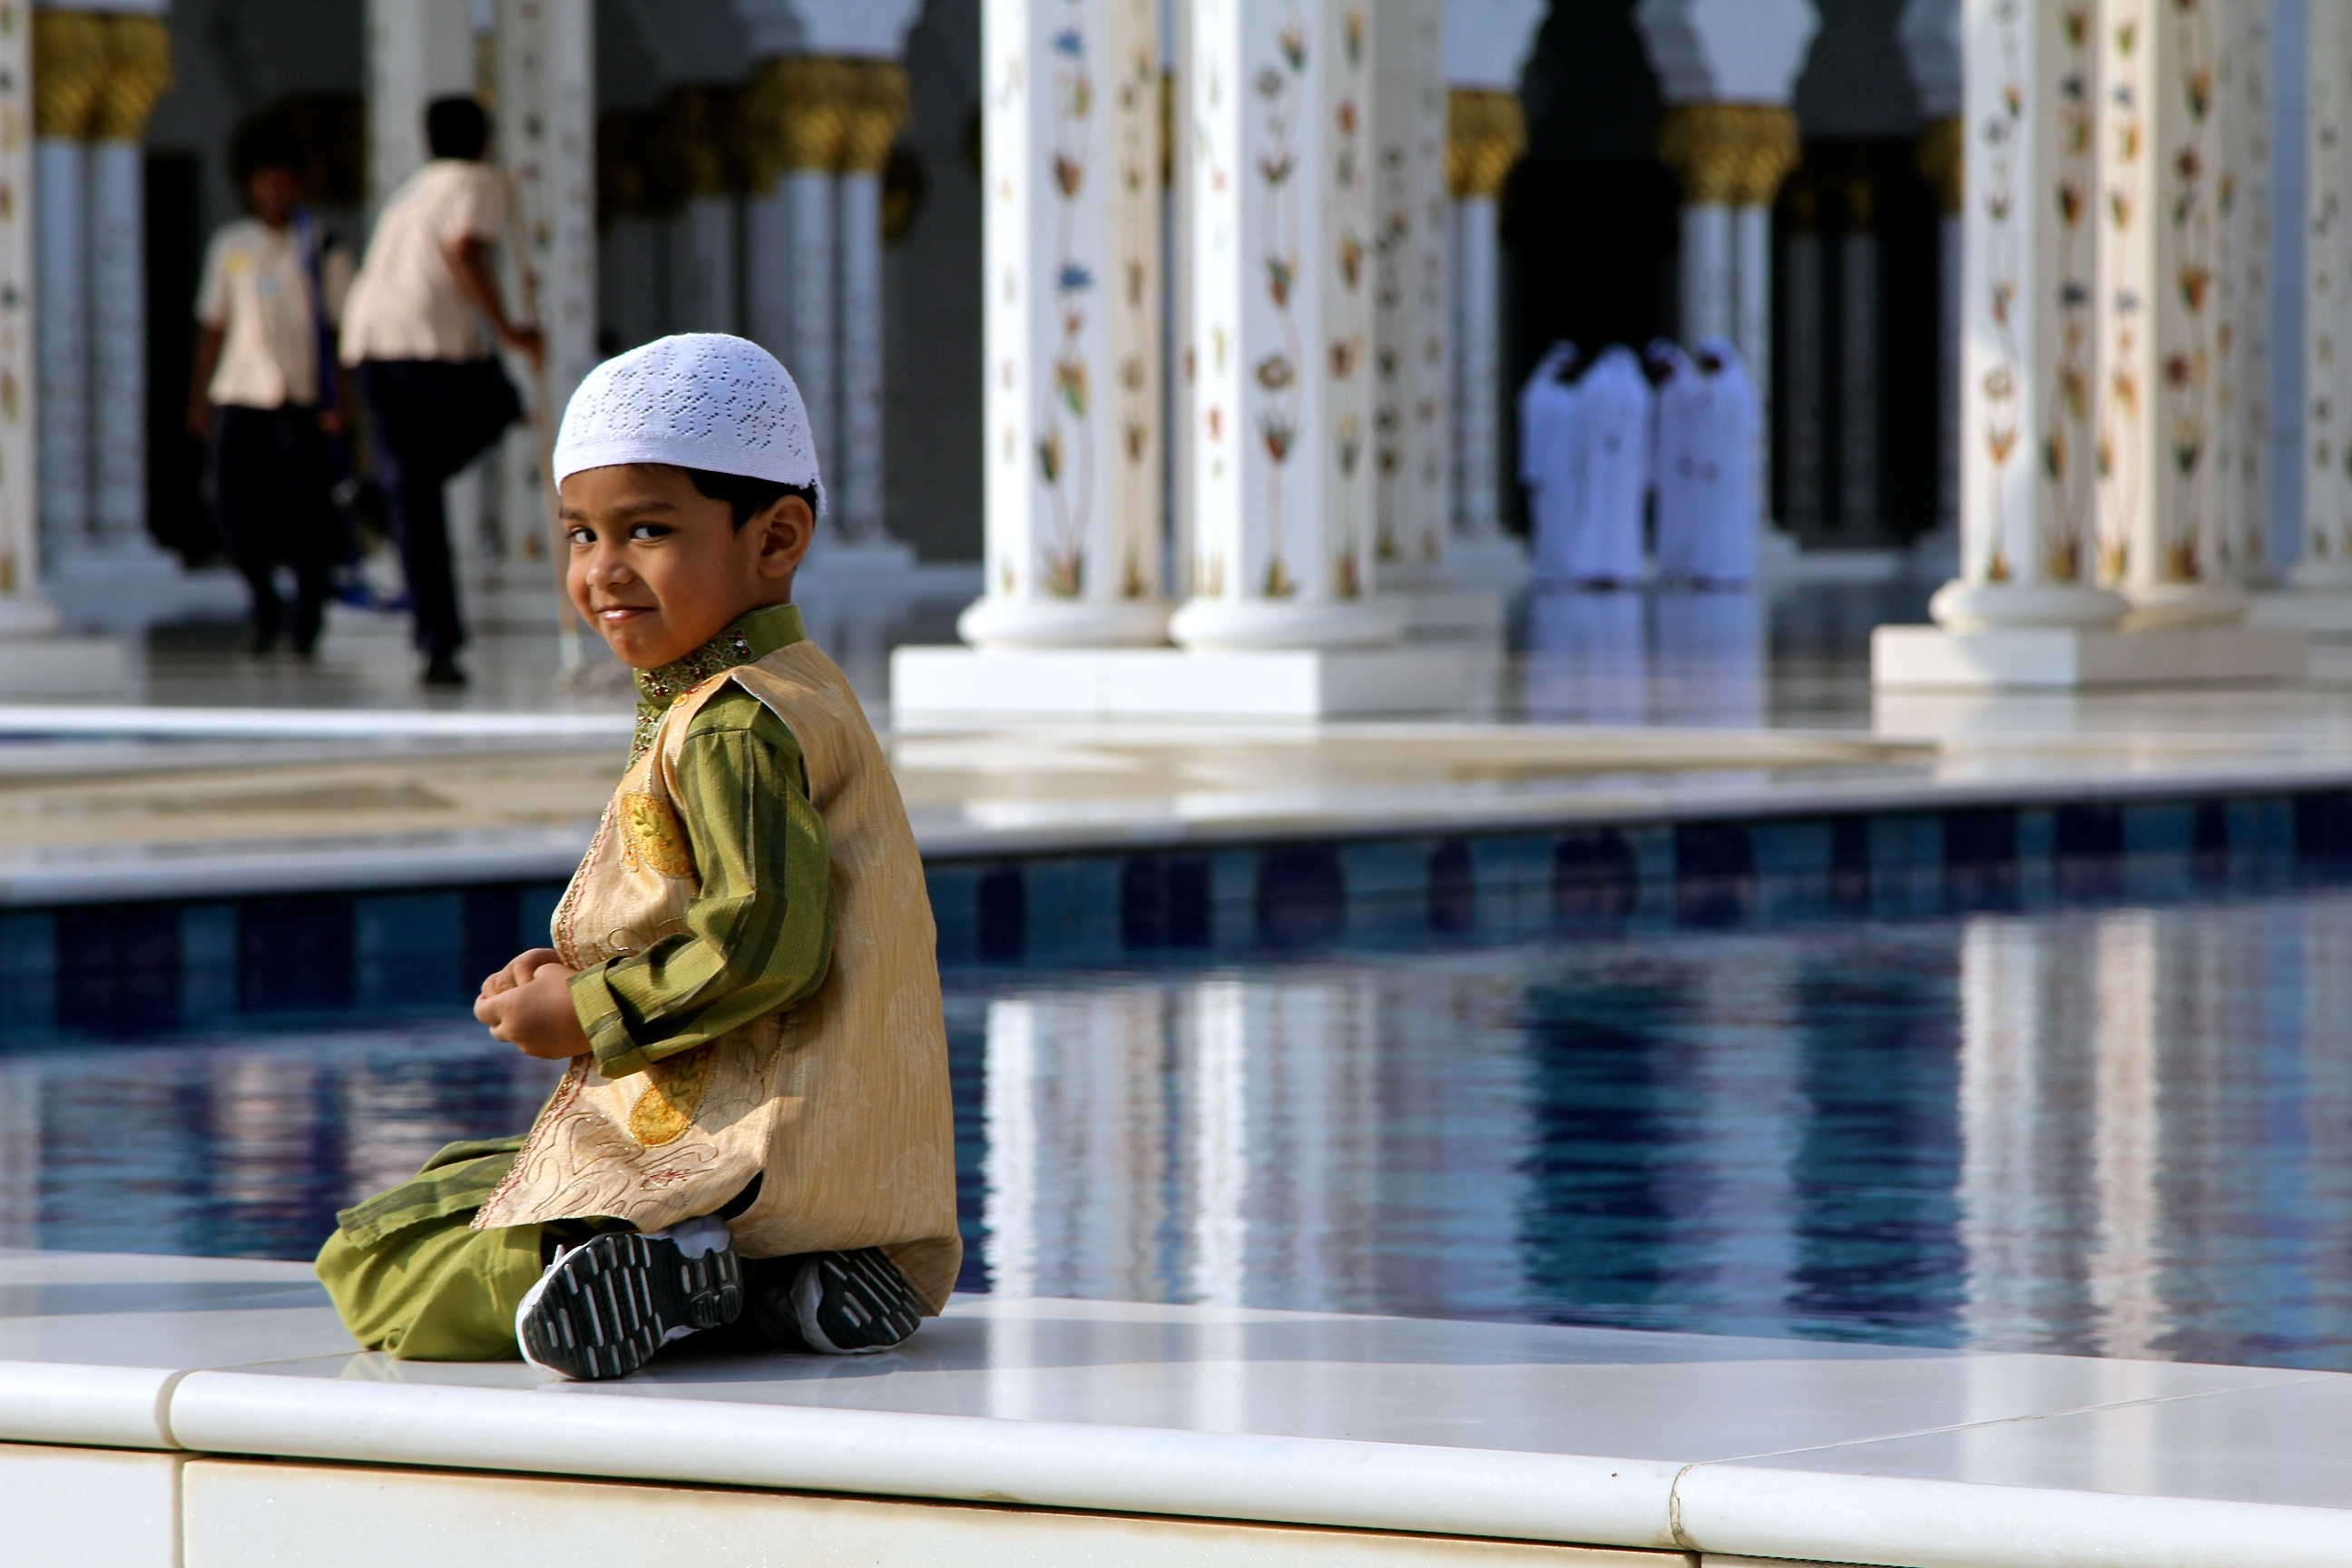 Boy in Mosque, Abu Dhabi